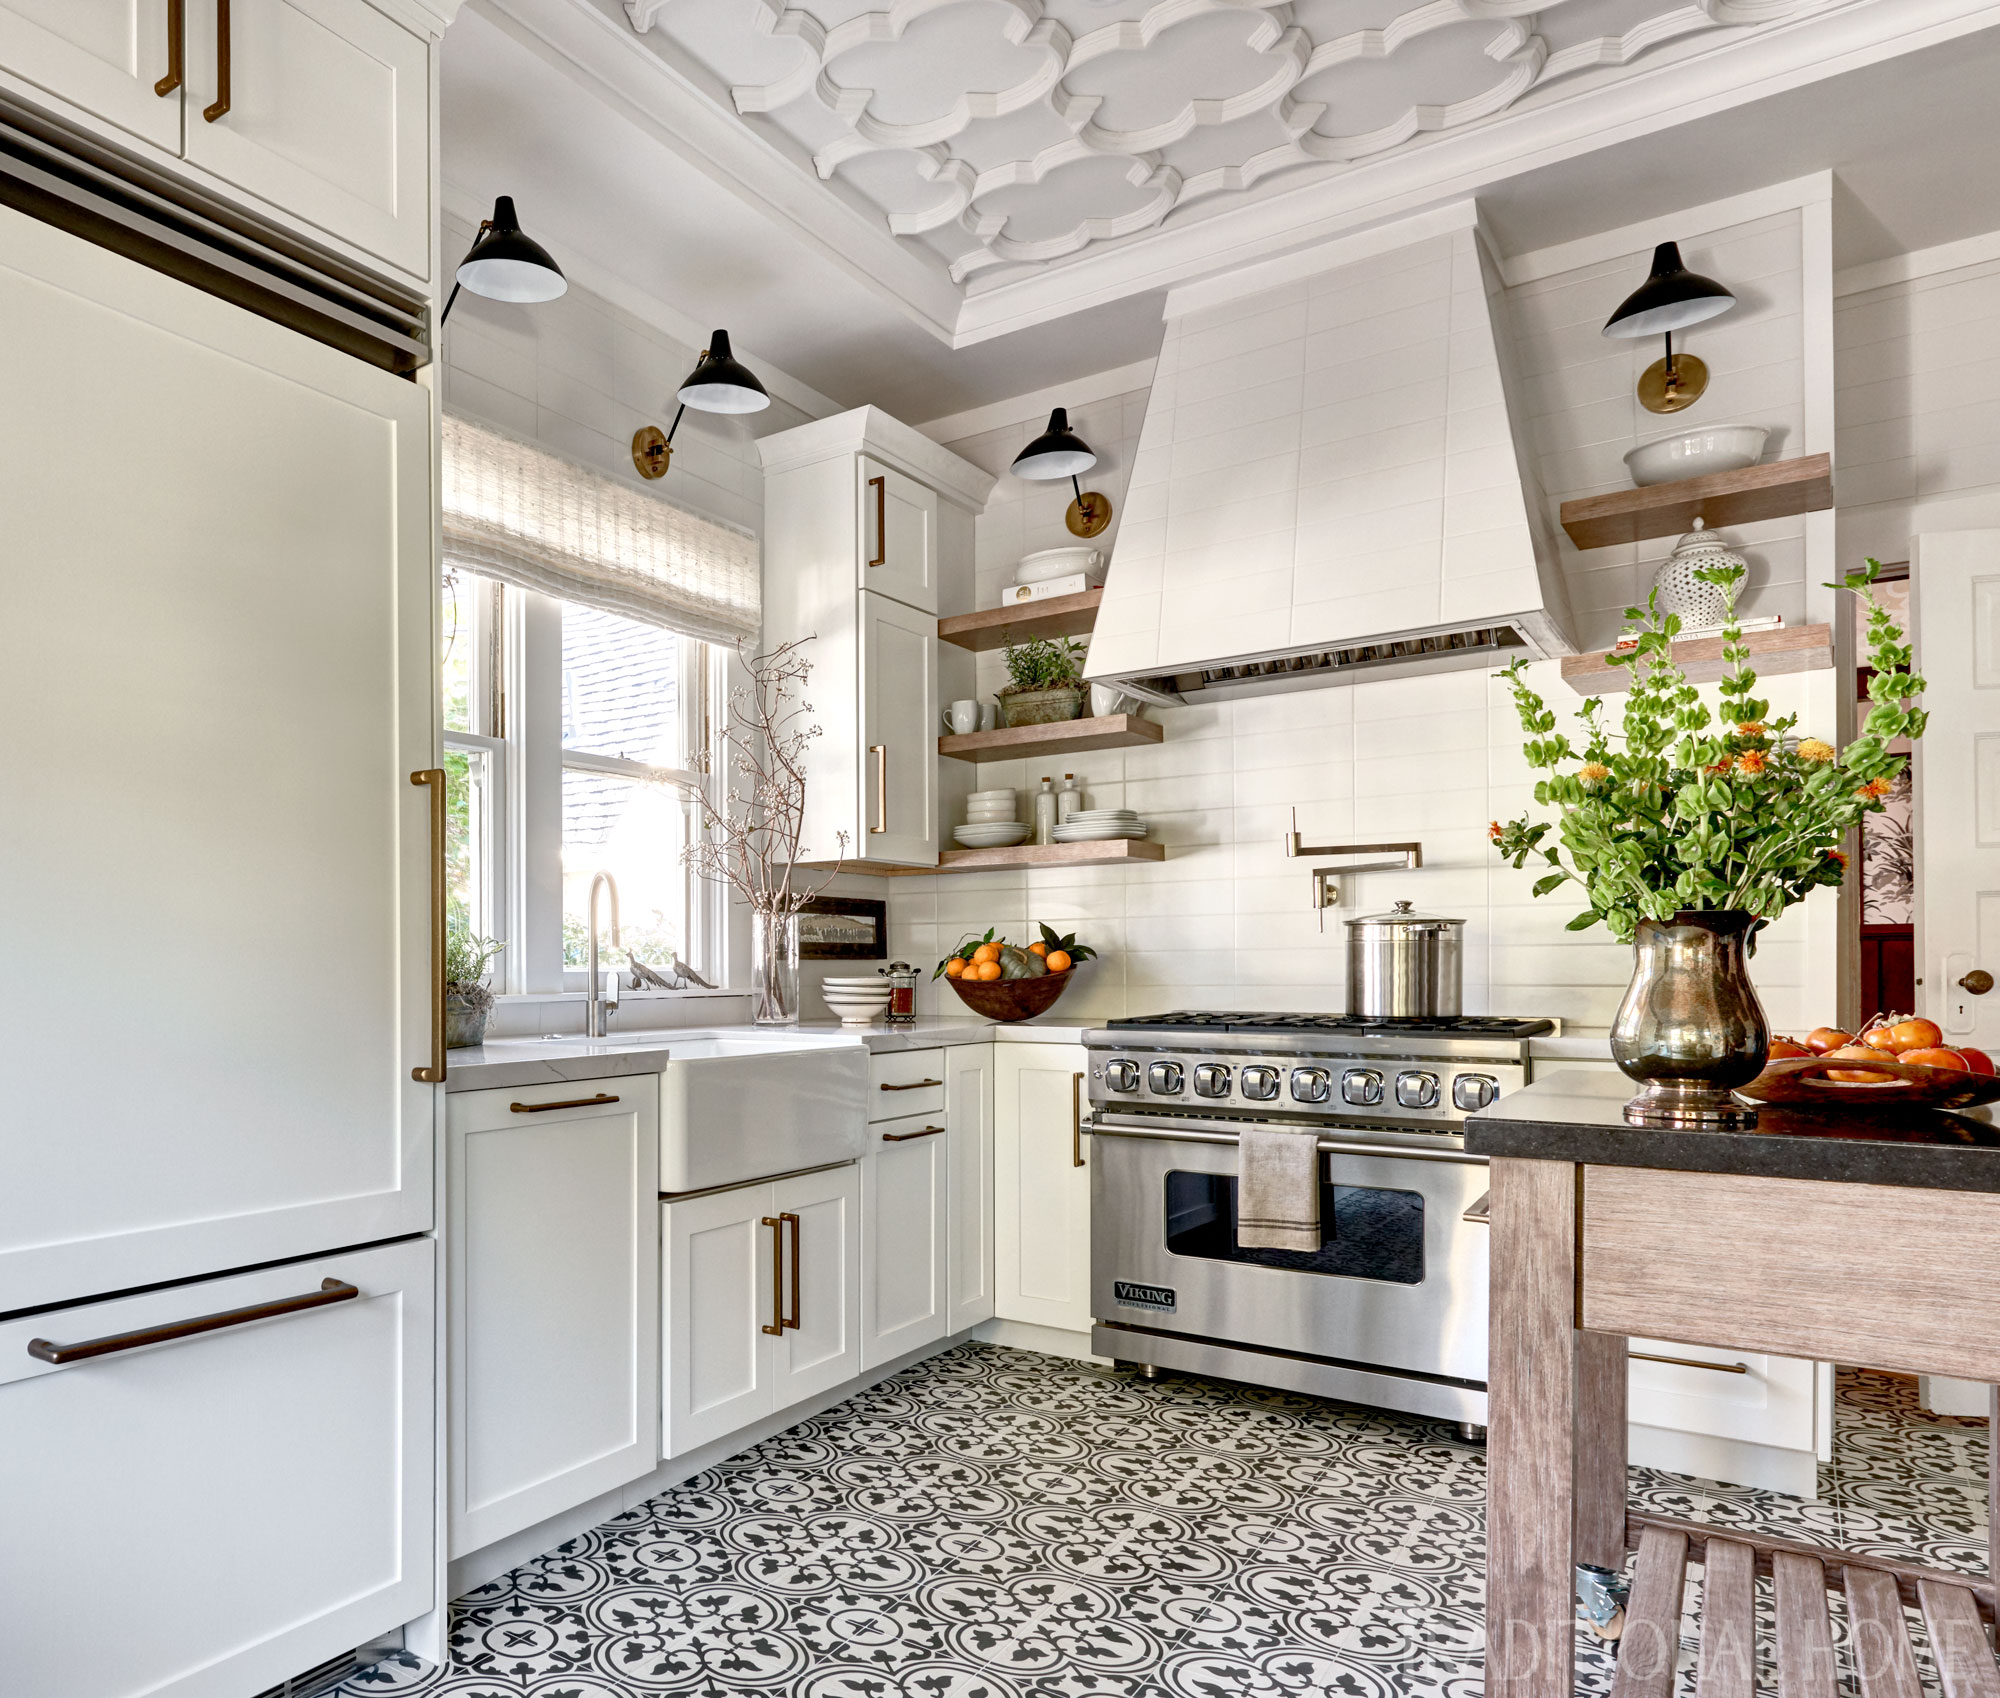 Flooring Trends 2019 - Loretta J. Willis, DESIGNER